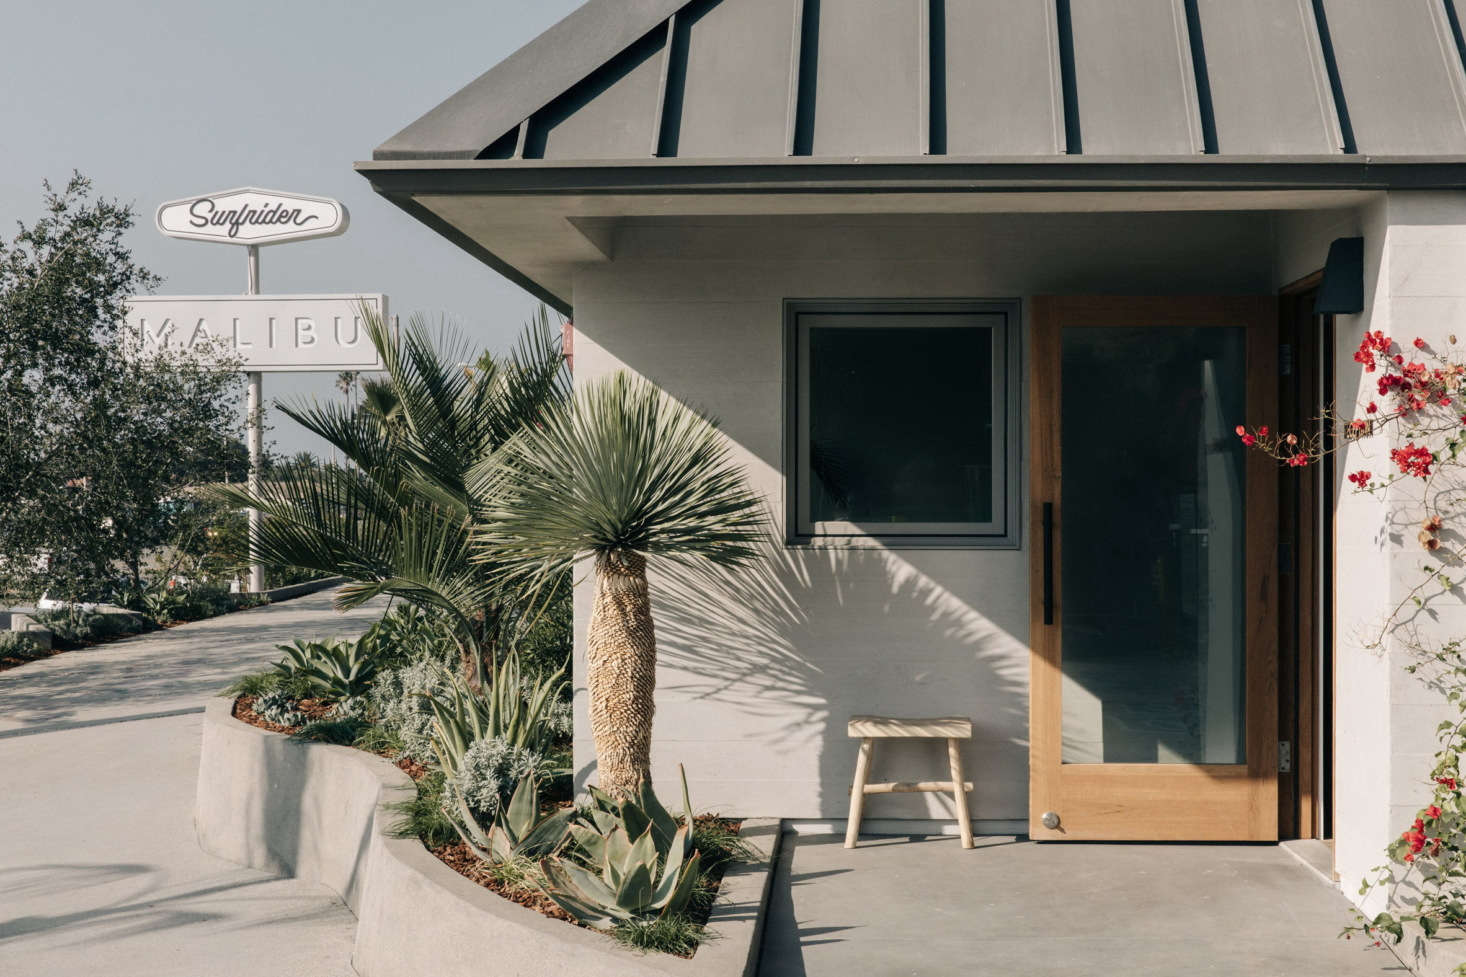 The entrance to The Surfrider, with a retro pitched roof.